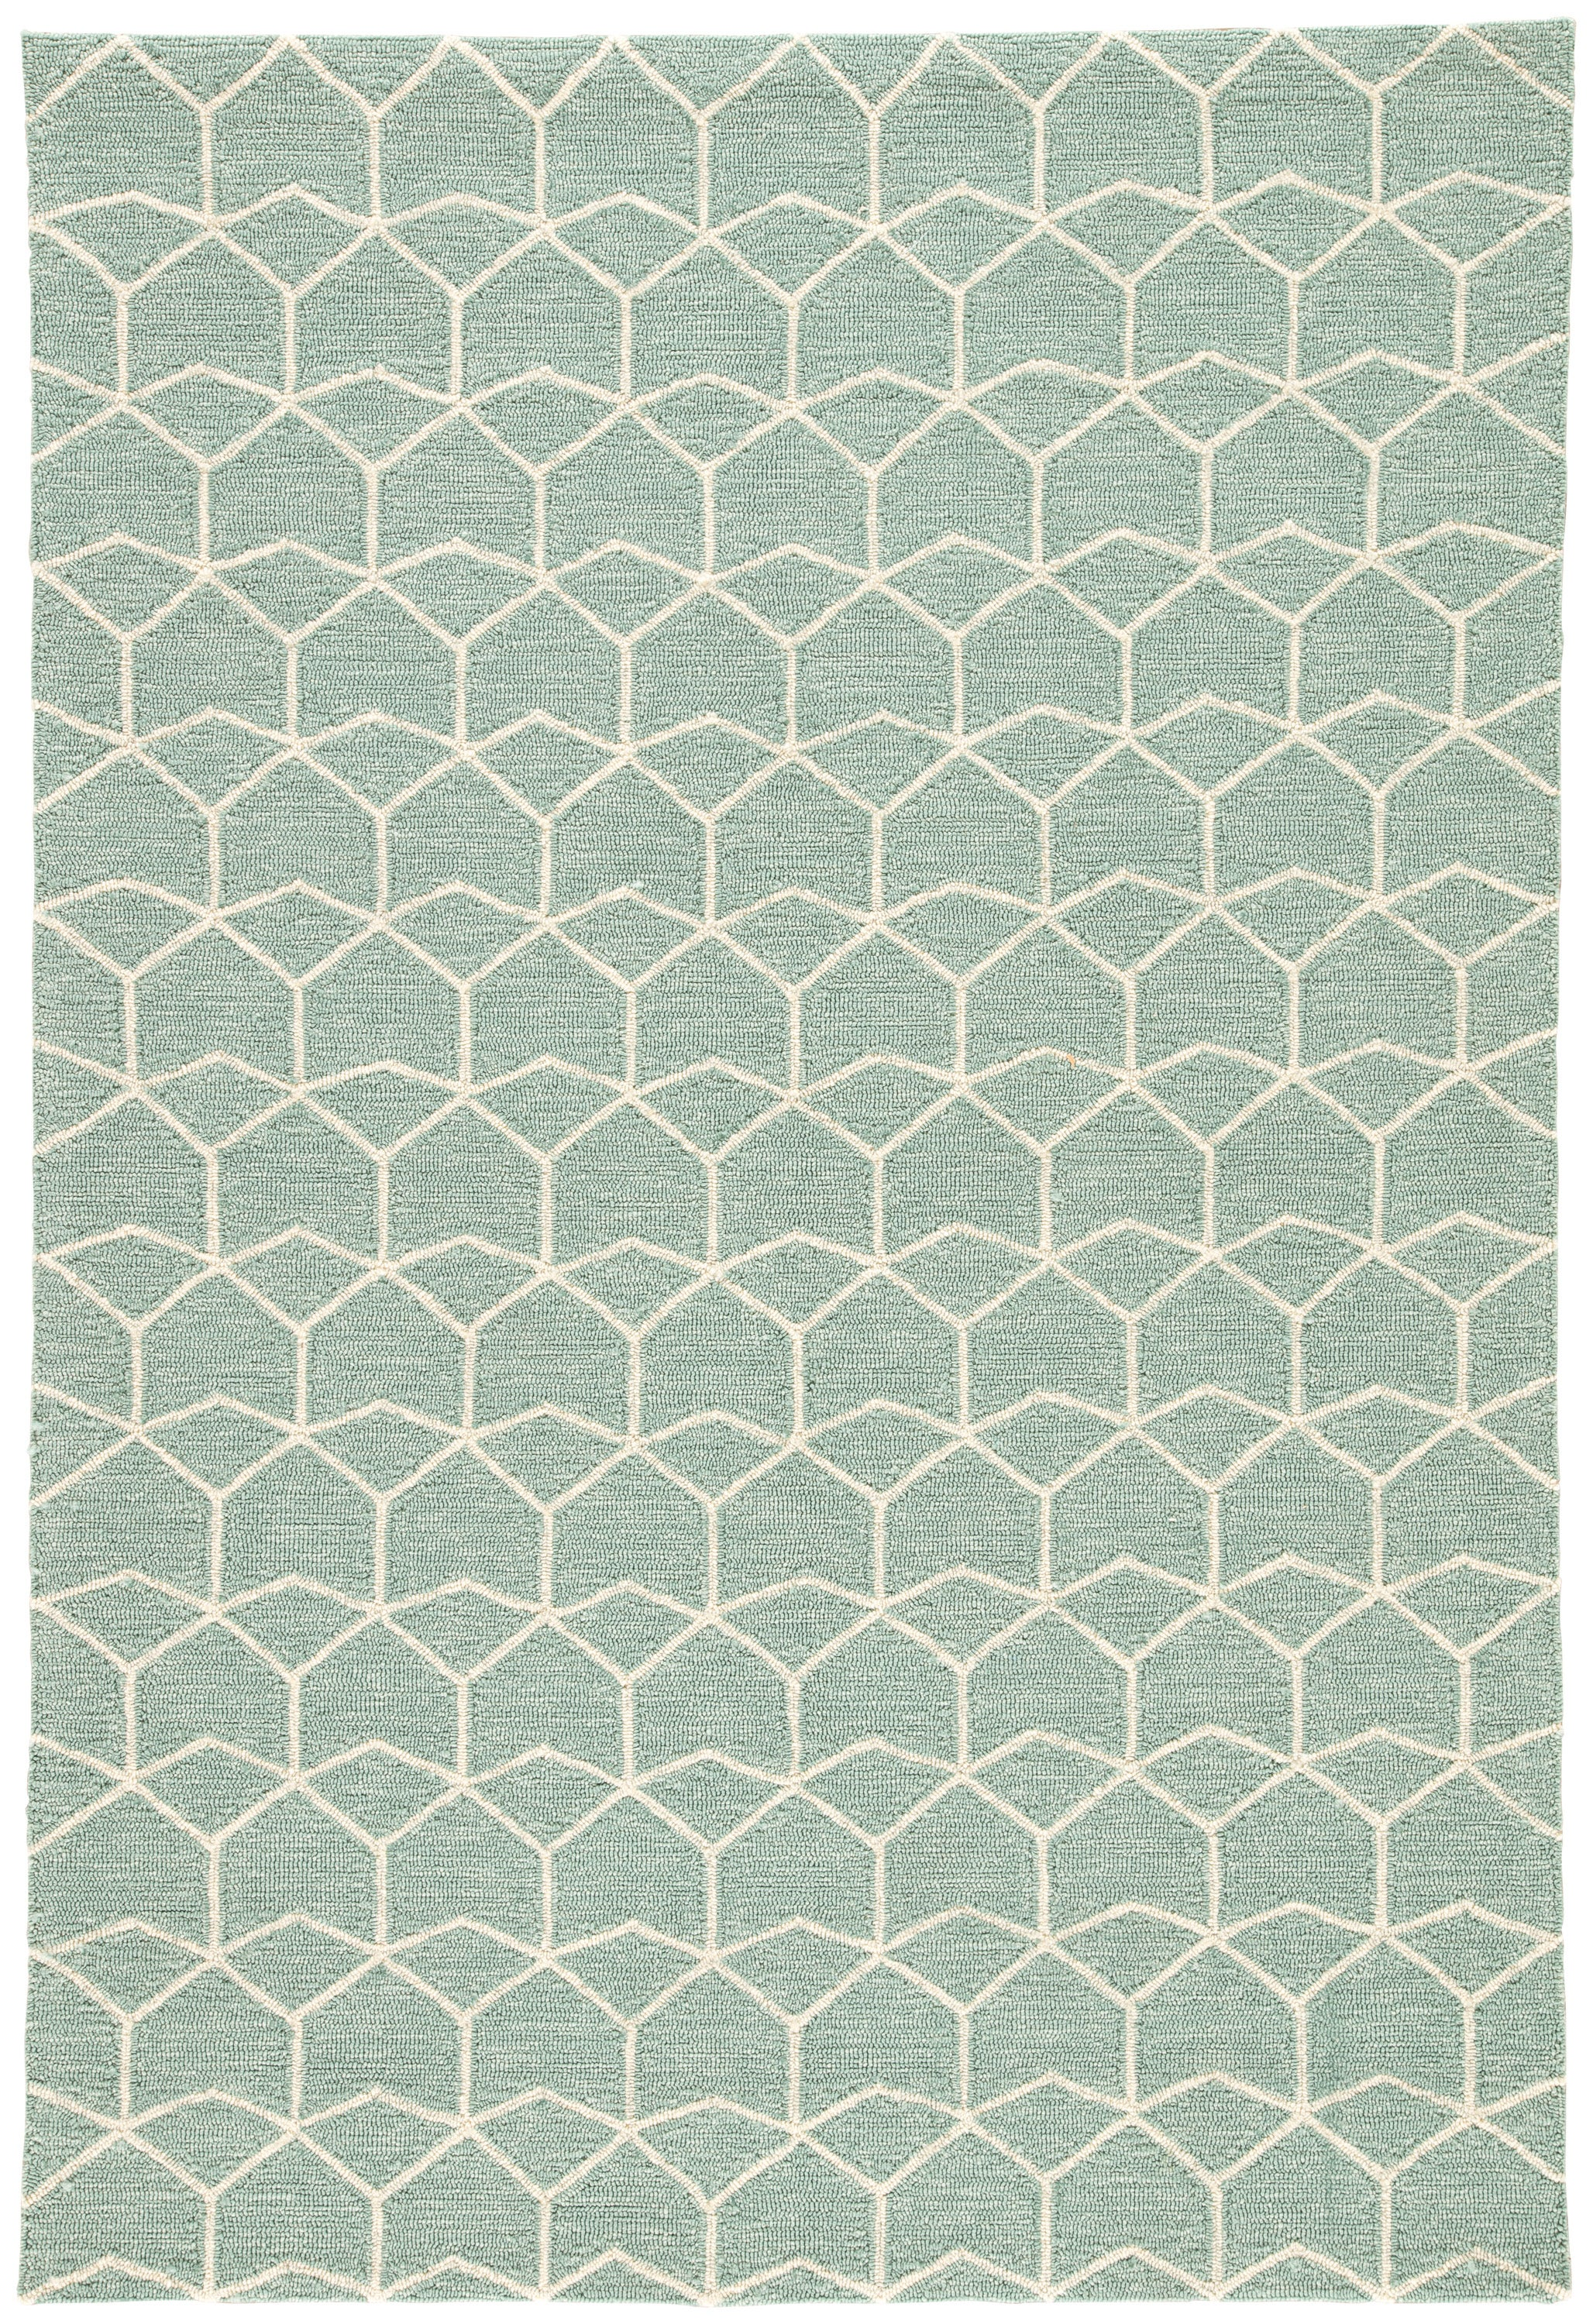 Rectangle 5x76 Green Geometric Hand Hooked Synthetics Contemporary recommended for Bedroom, Bathroom, Outdoor, Dining Room, Office, Hallway, Living Room